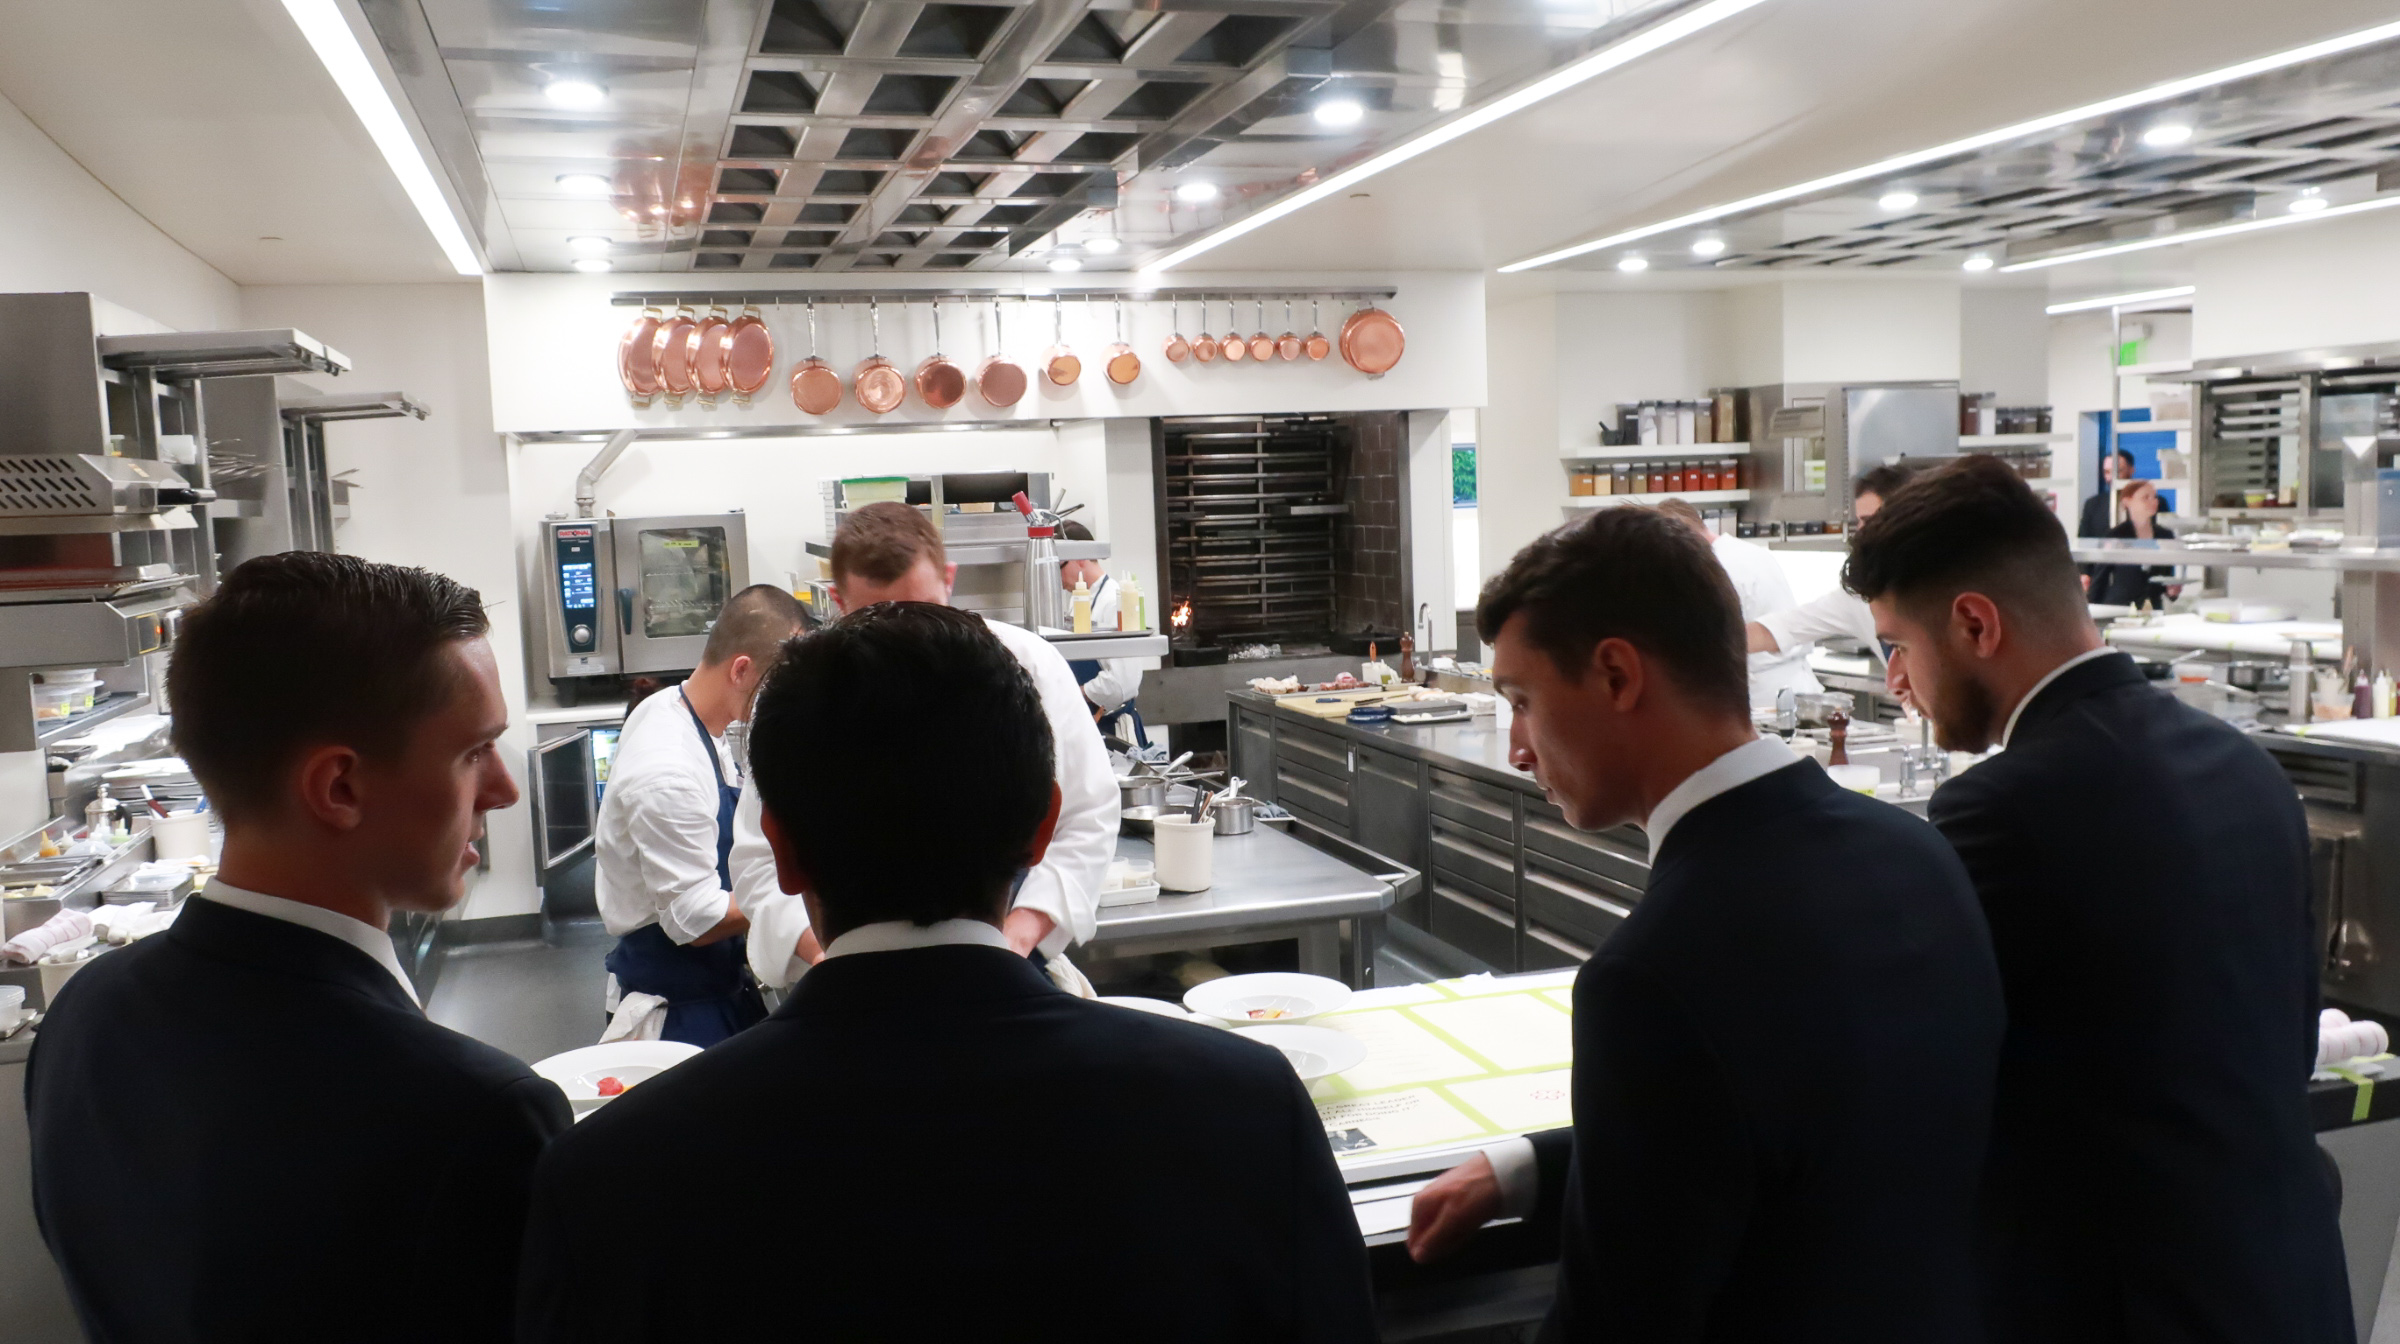 Calm and professional, the French Laundry kitchen